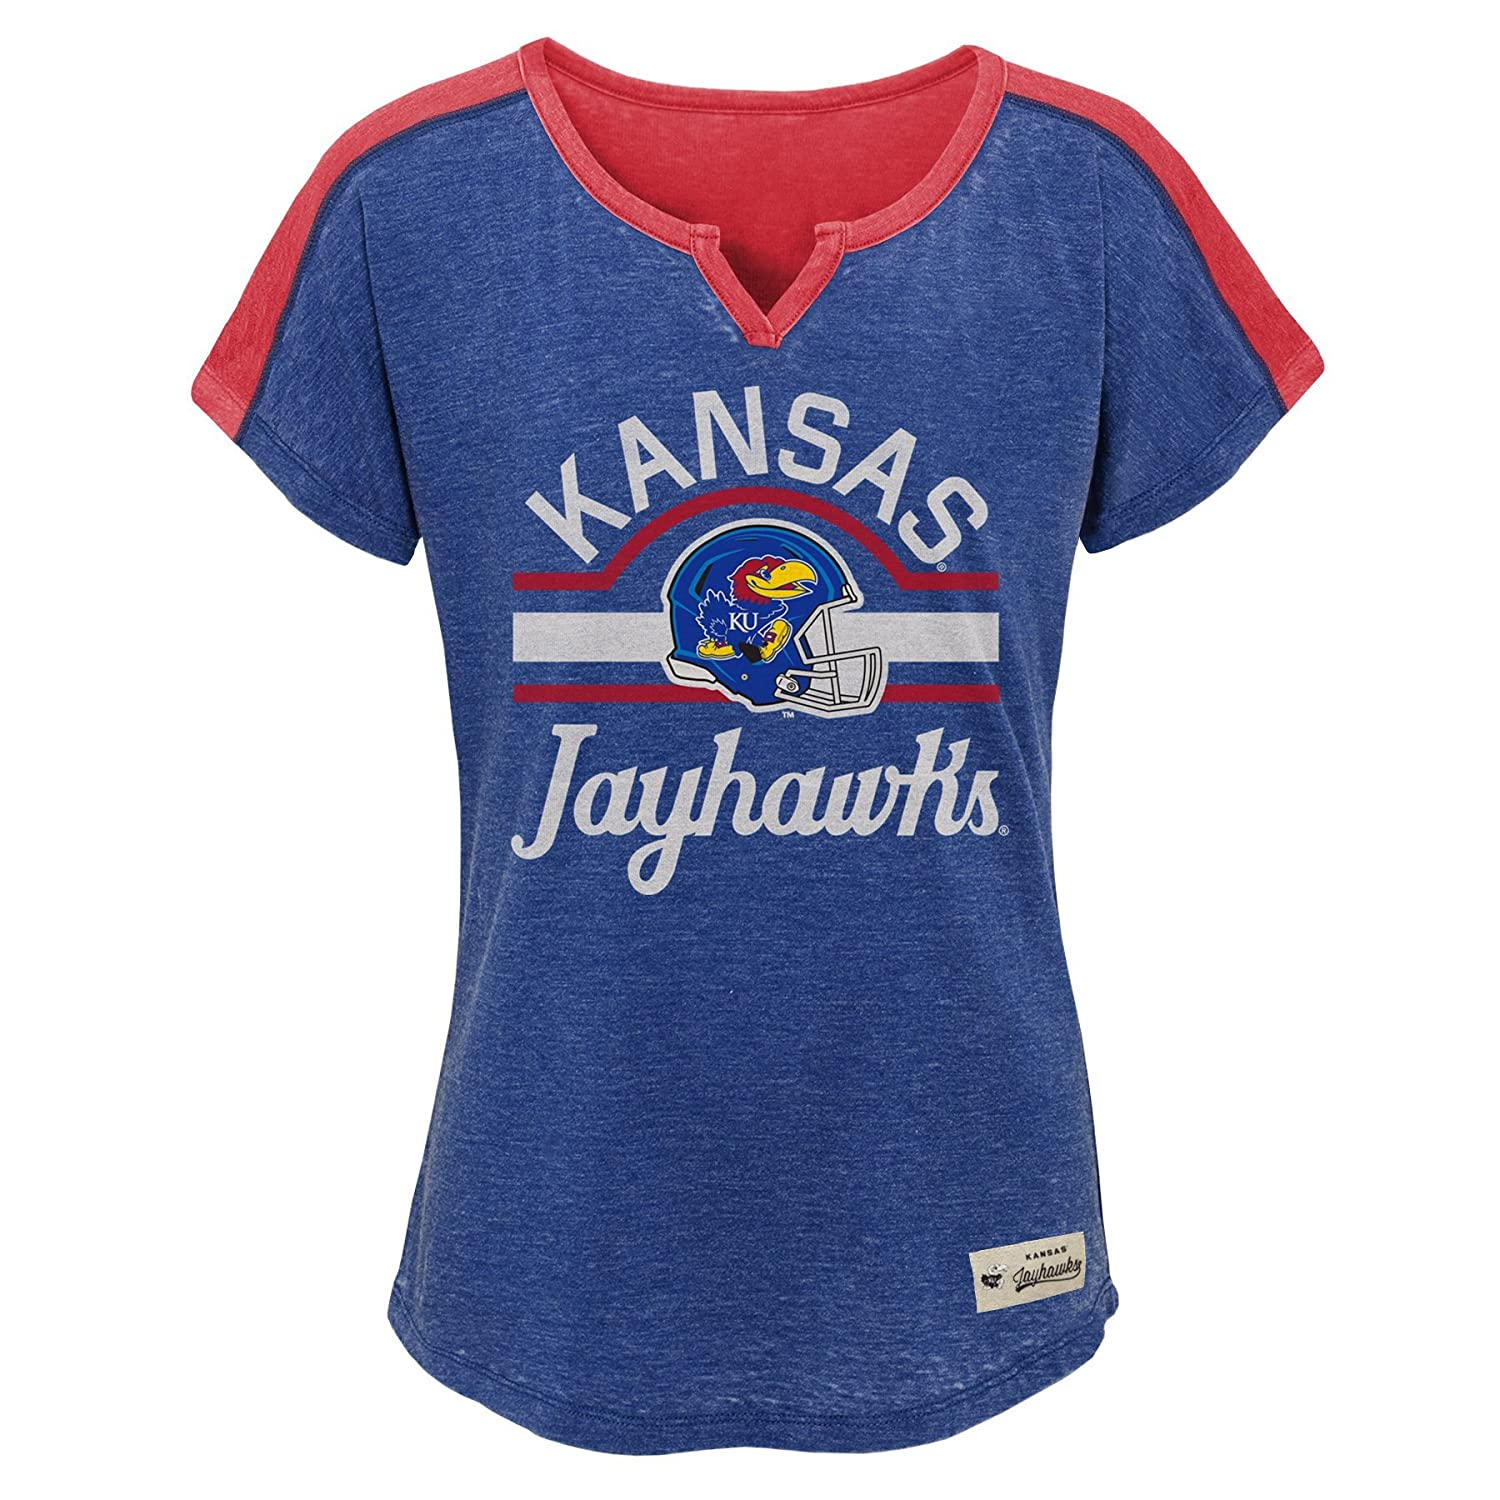 10-12 Youth Medium NCAA by Outerstuff NCAA Kansas Jayhawks Youth Girls Tribute Raglan Football Tee Royal